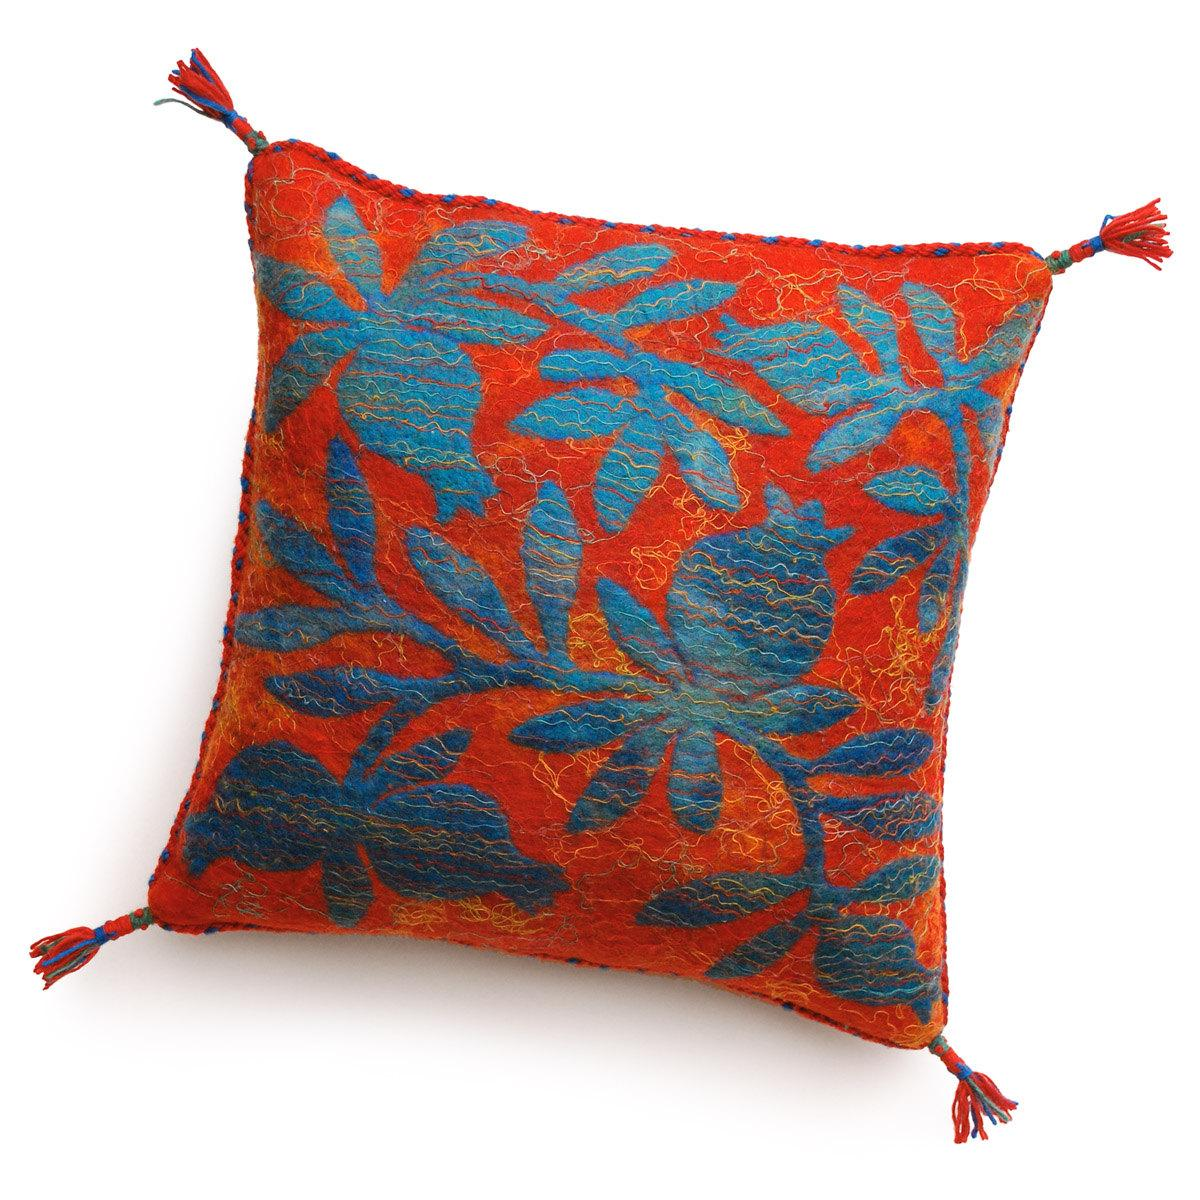 Turquoise on red. 40 x 40 cm  15,75 x 15,75 . From gobifelt